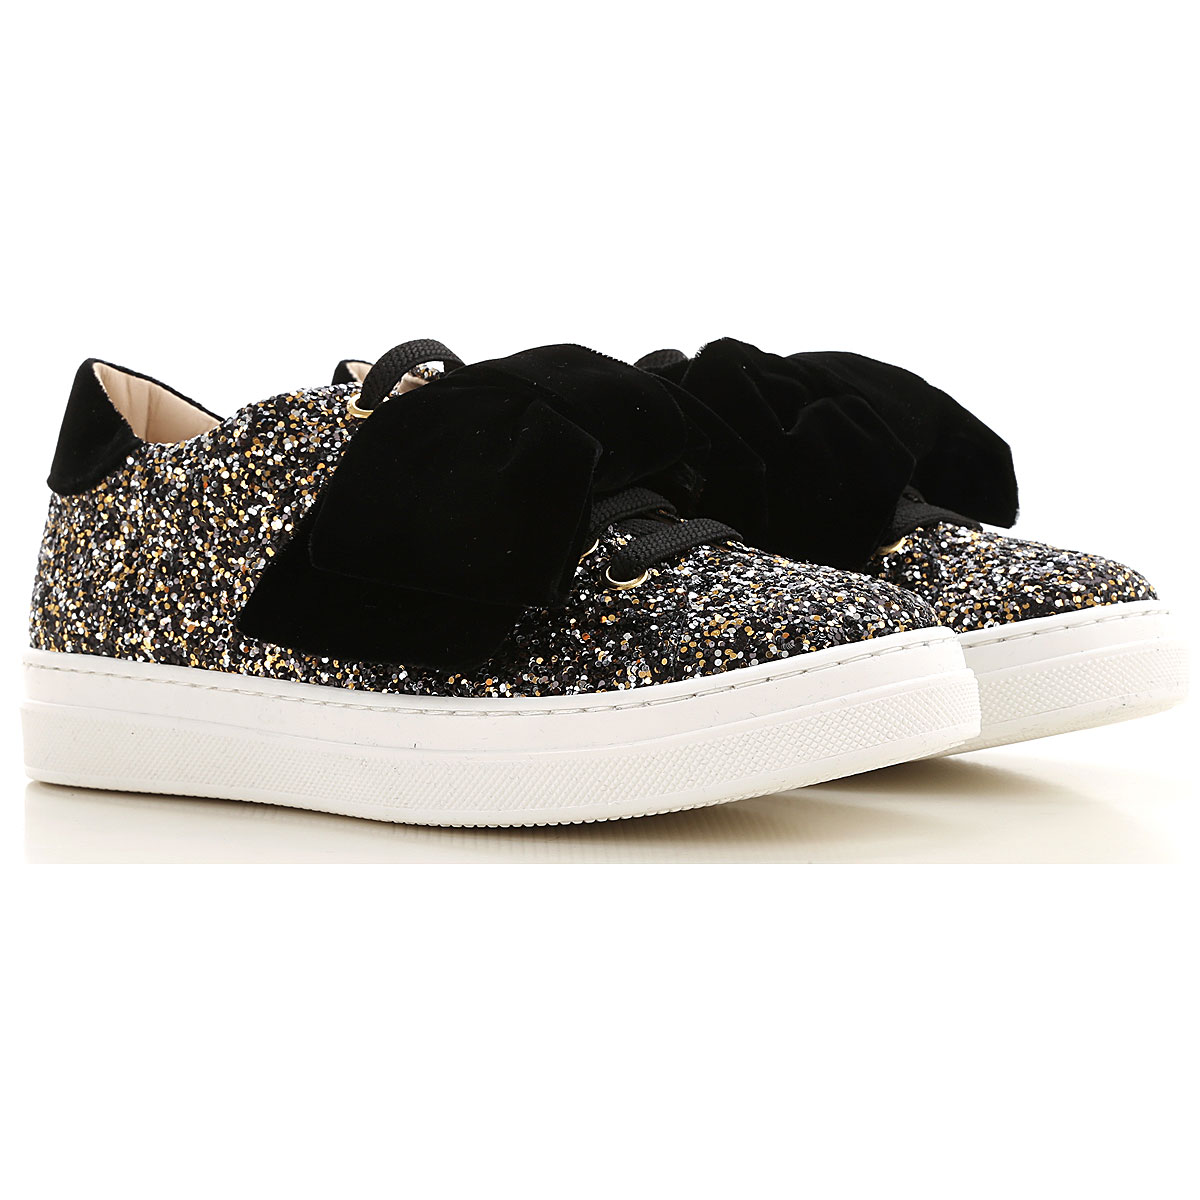 Florens Kids Shoes for Girls On Sale, Silver, Leather, 2019, 28 29 30 31 32 33 34 35 36 37 38